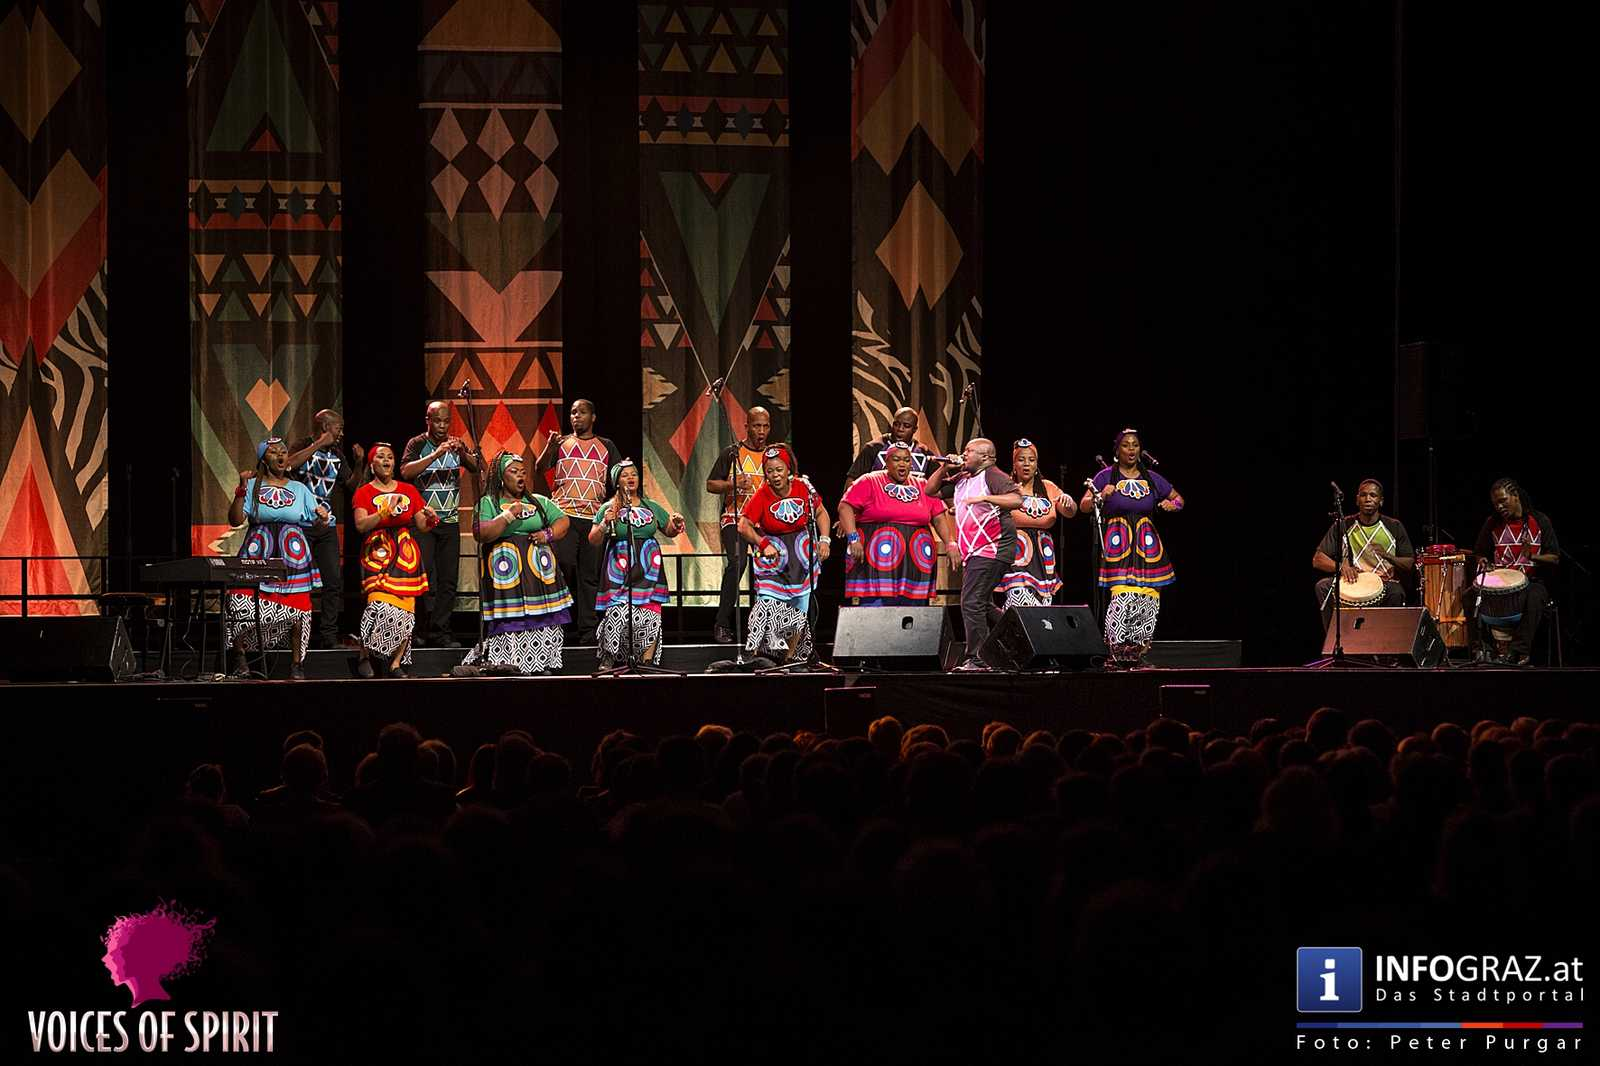 soweto gospel choir internationales chorfestival statdthalle graz voices of spirit eroeffnung festivals 2016 044